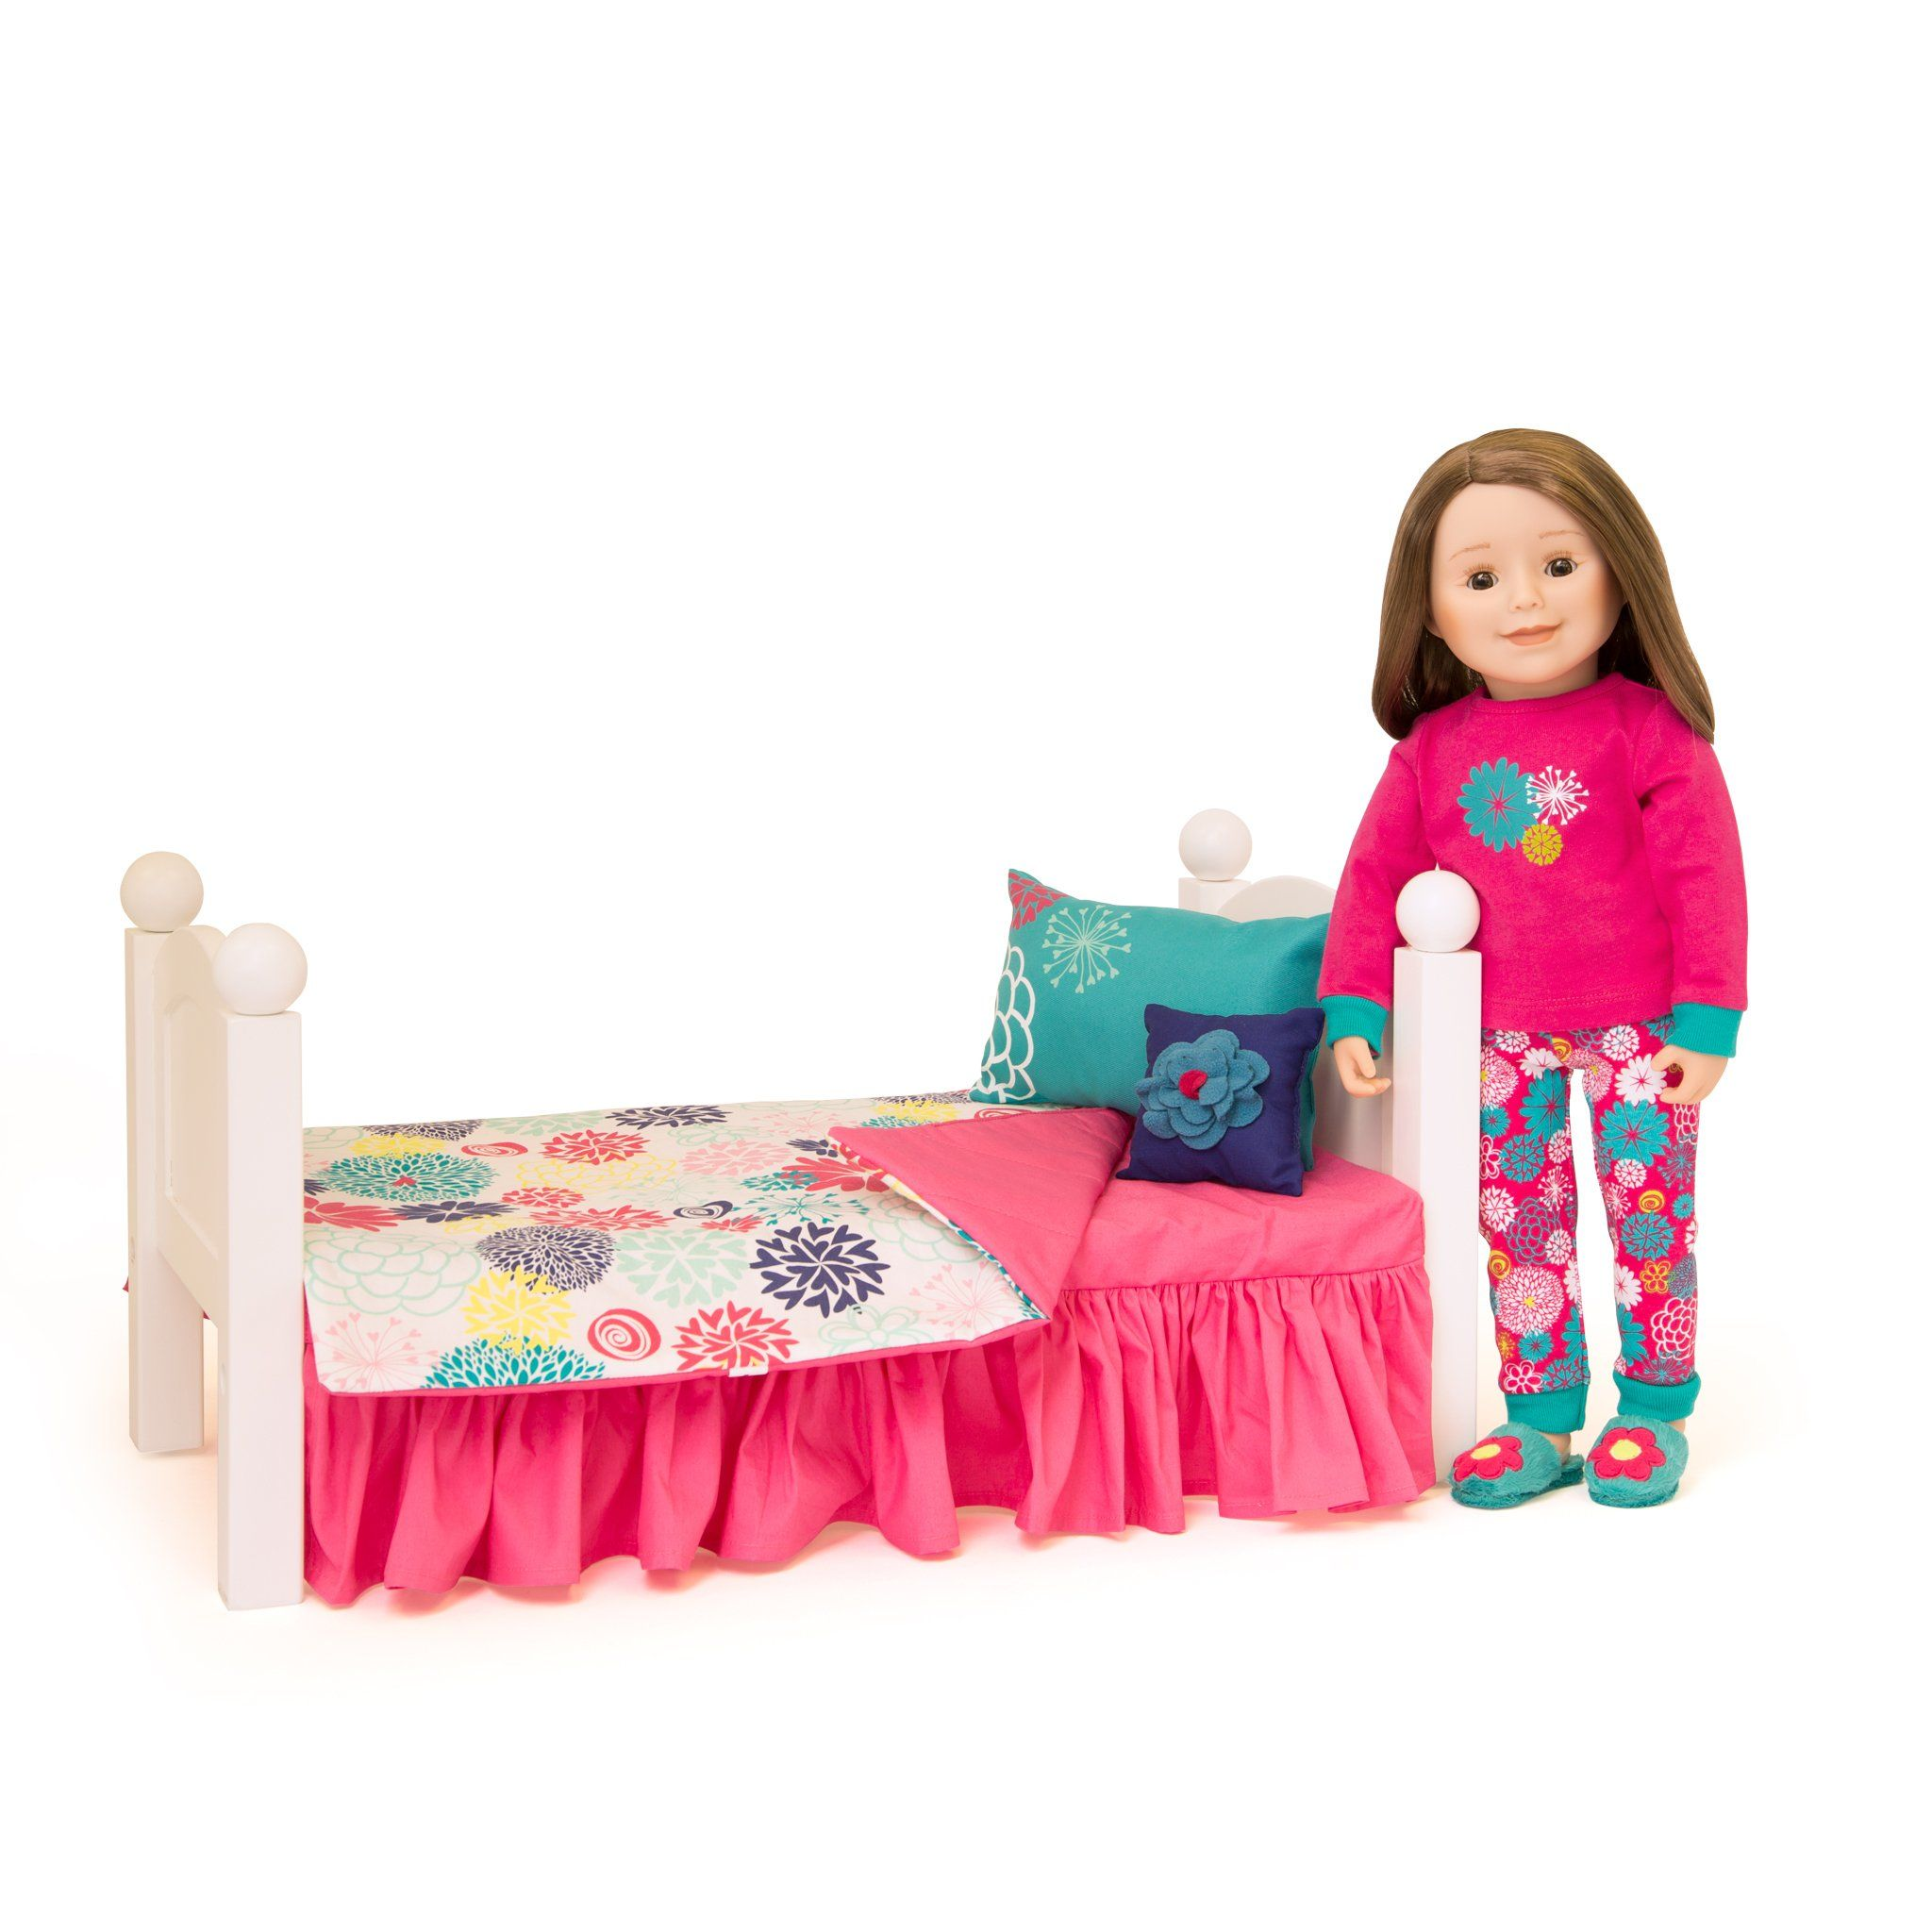 Field of Flowers Bedding Flower bedding, Doll beds, Doll